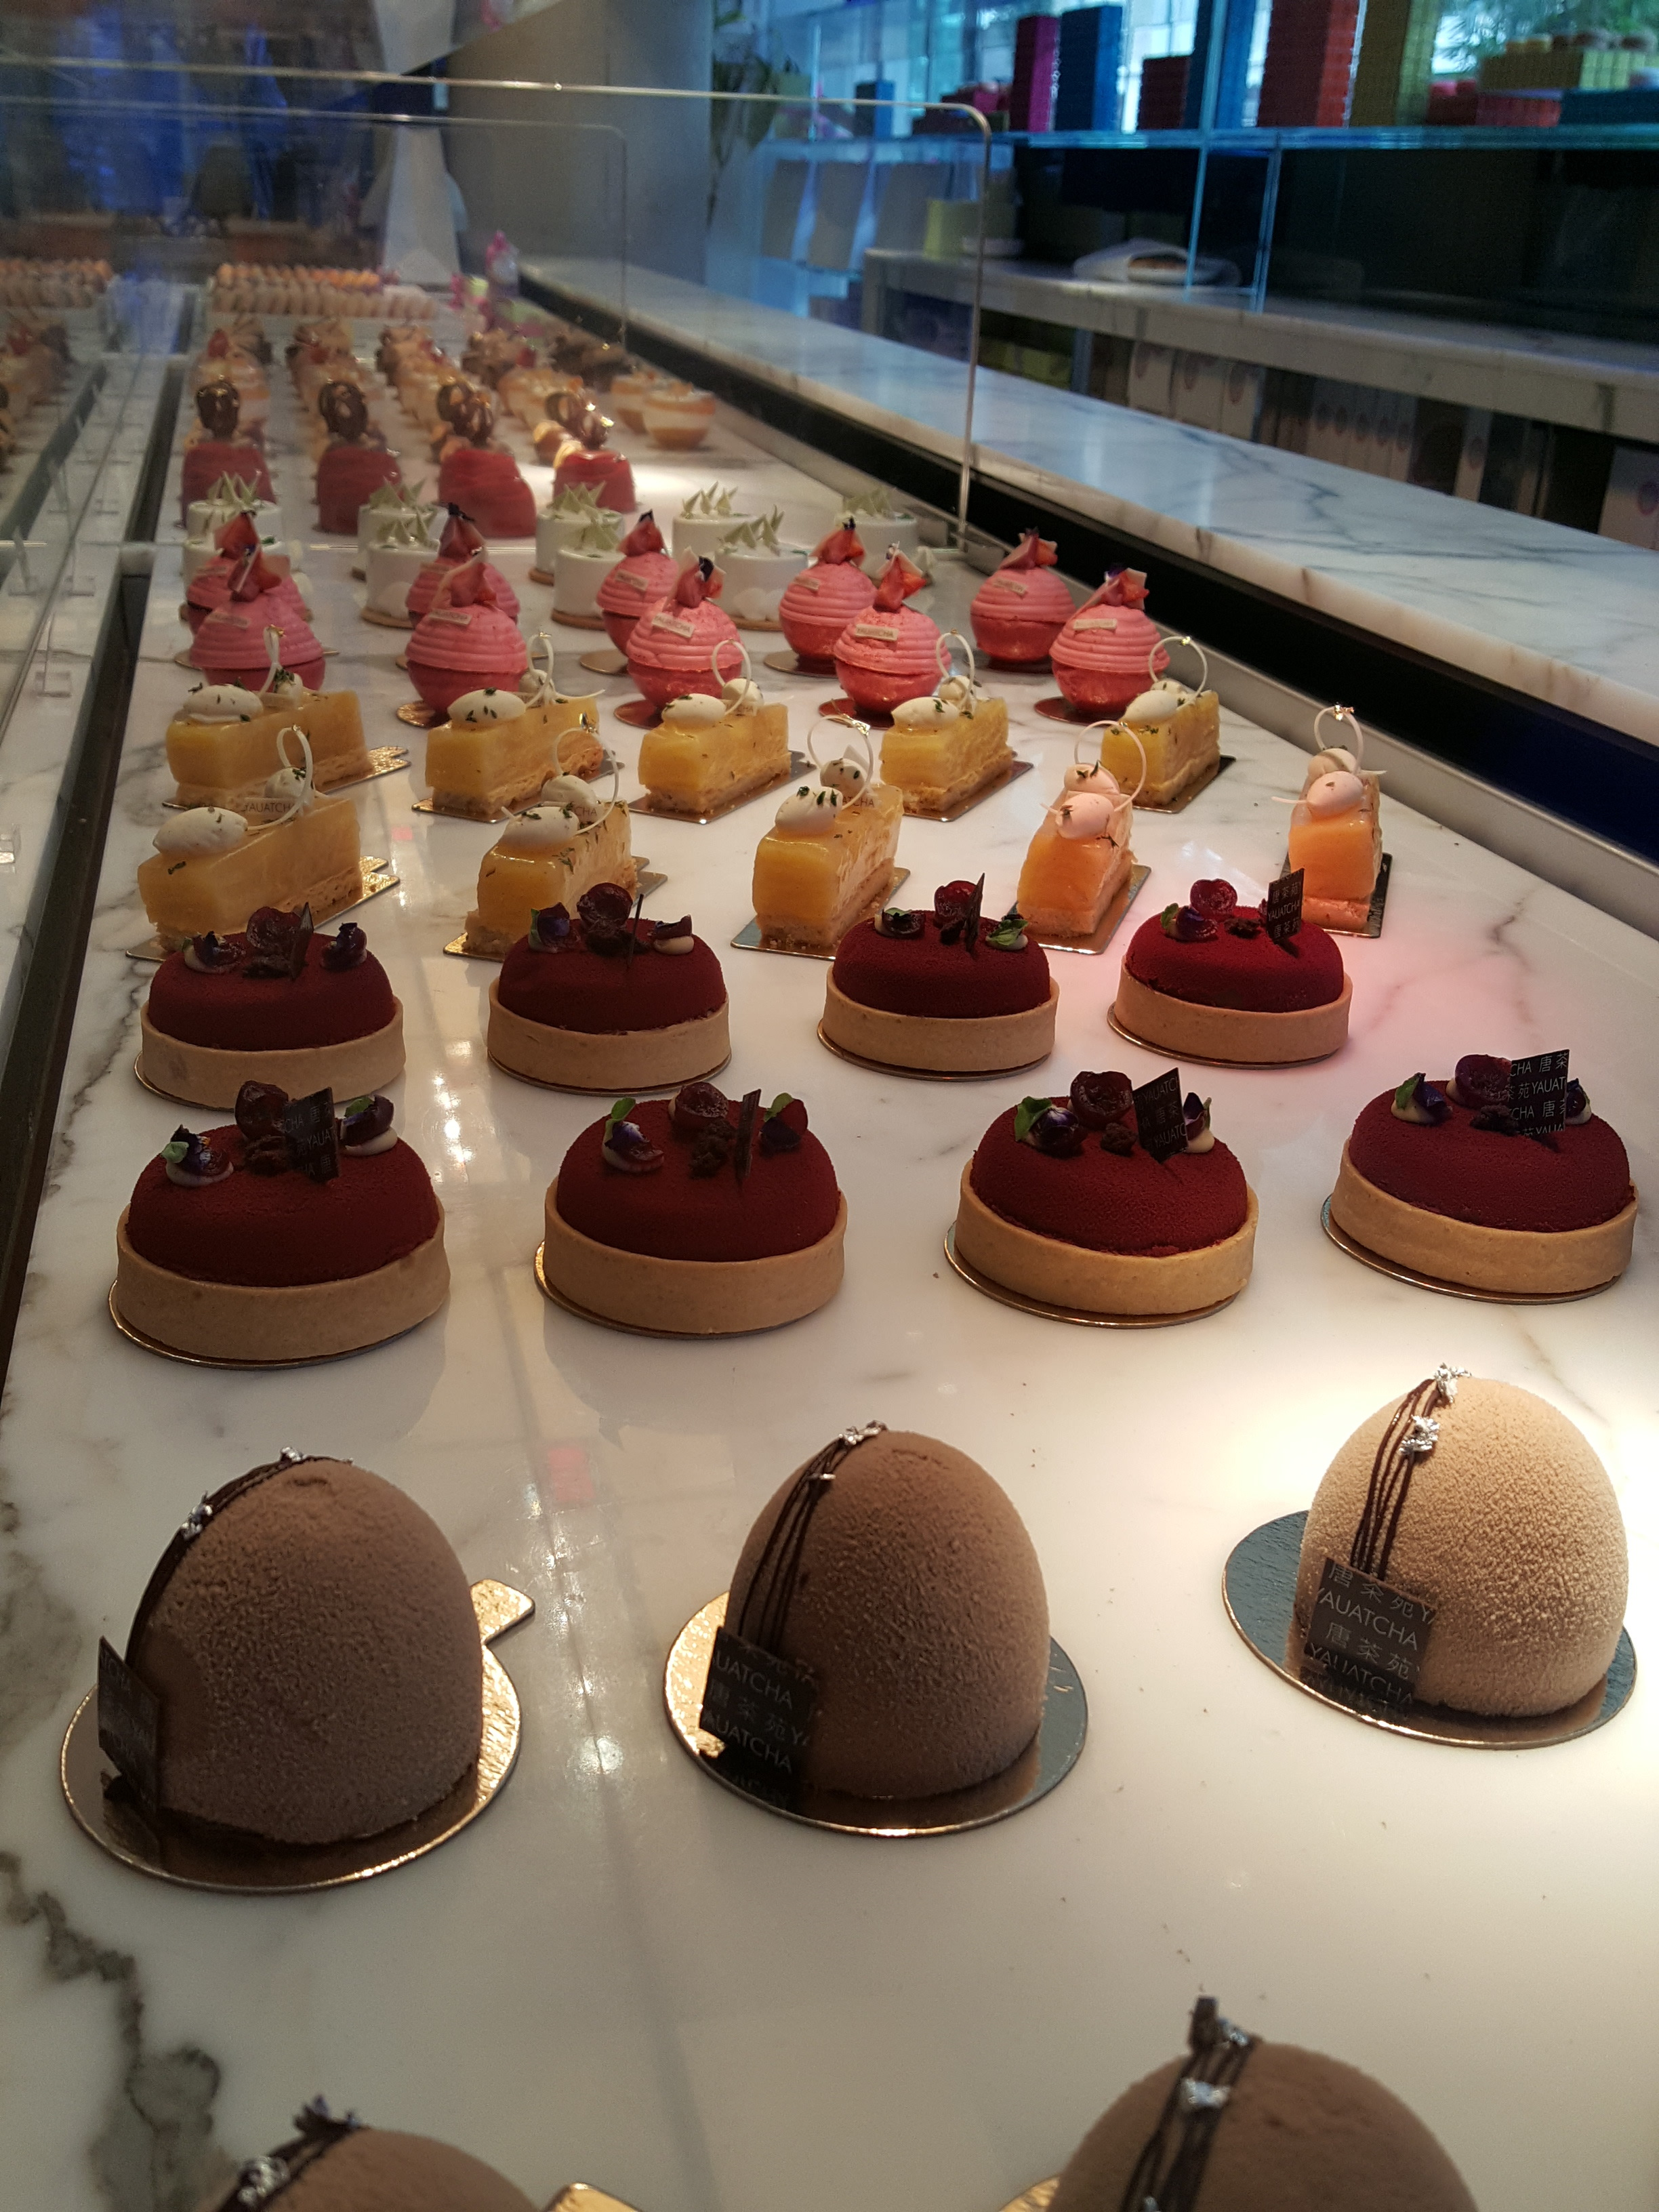 Pure pastry artistry at Yauatcha. And lovely meeting the pastry chef, Sarah Frankland!